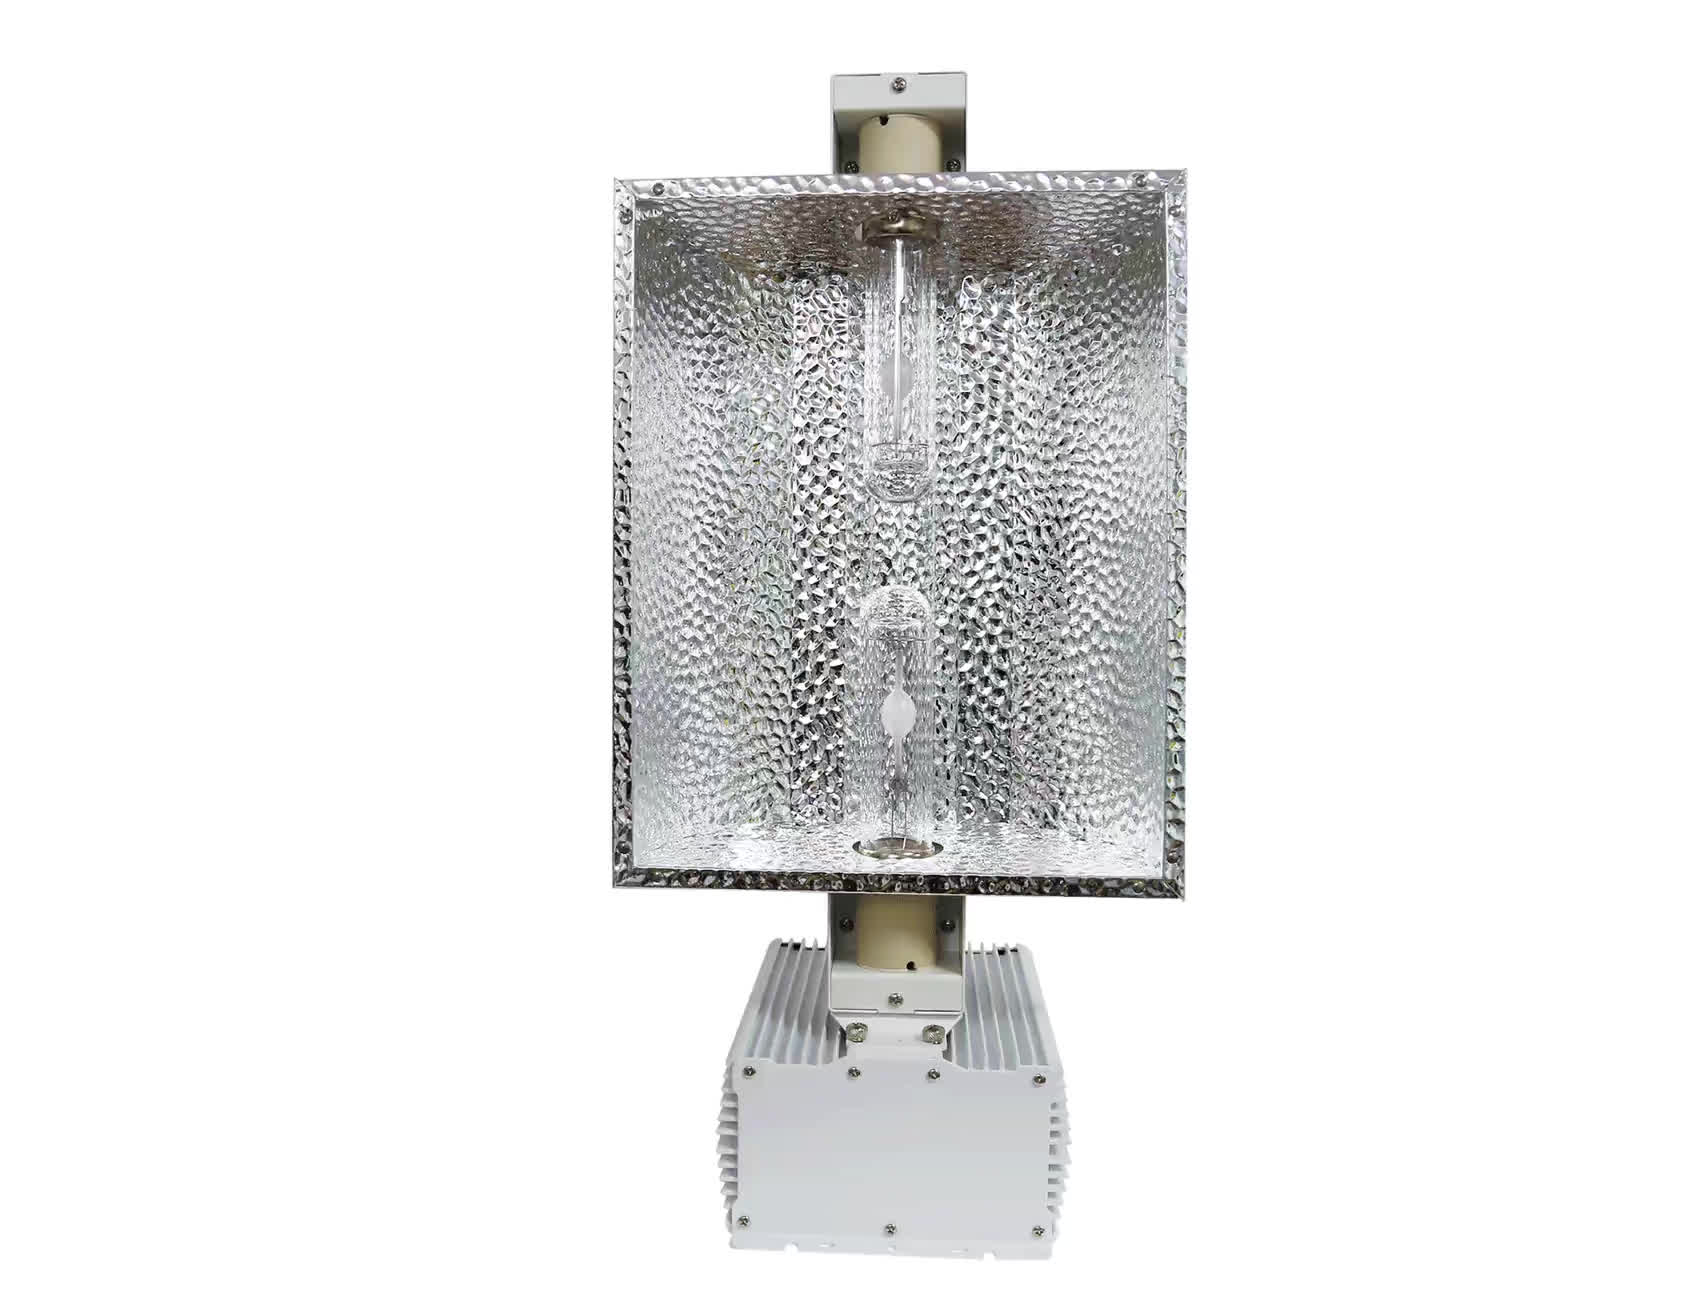 On Sale 10% off Highly Reflective 630w ballast cmh